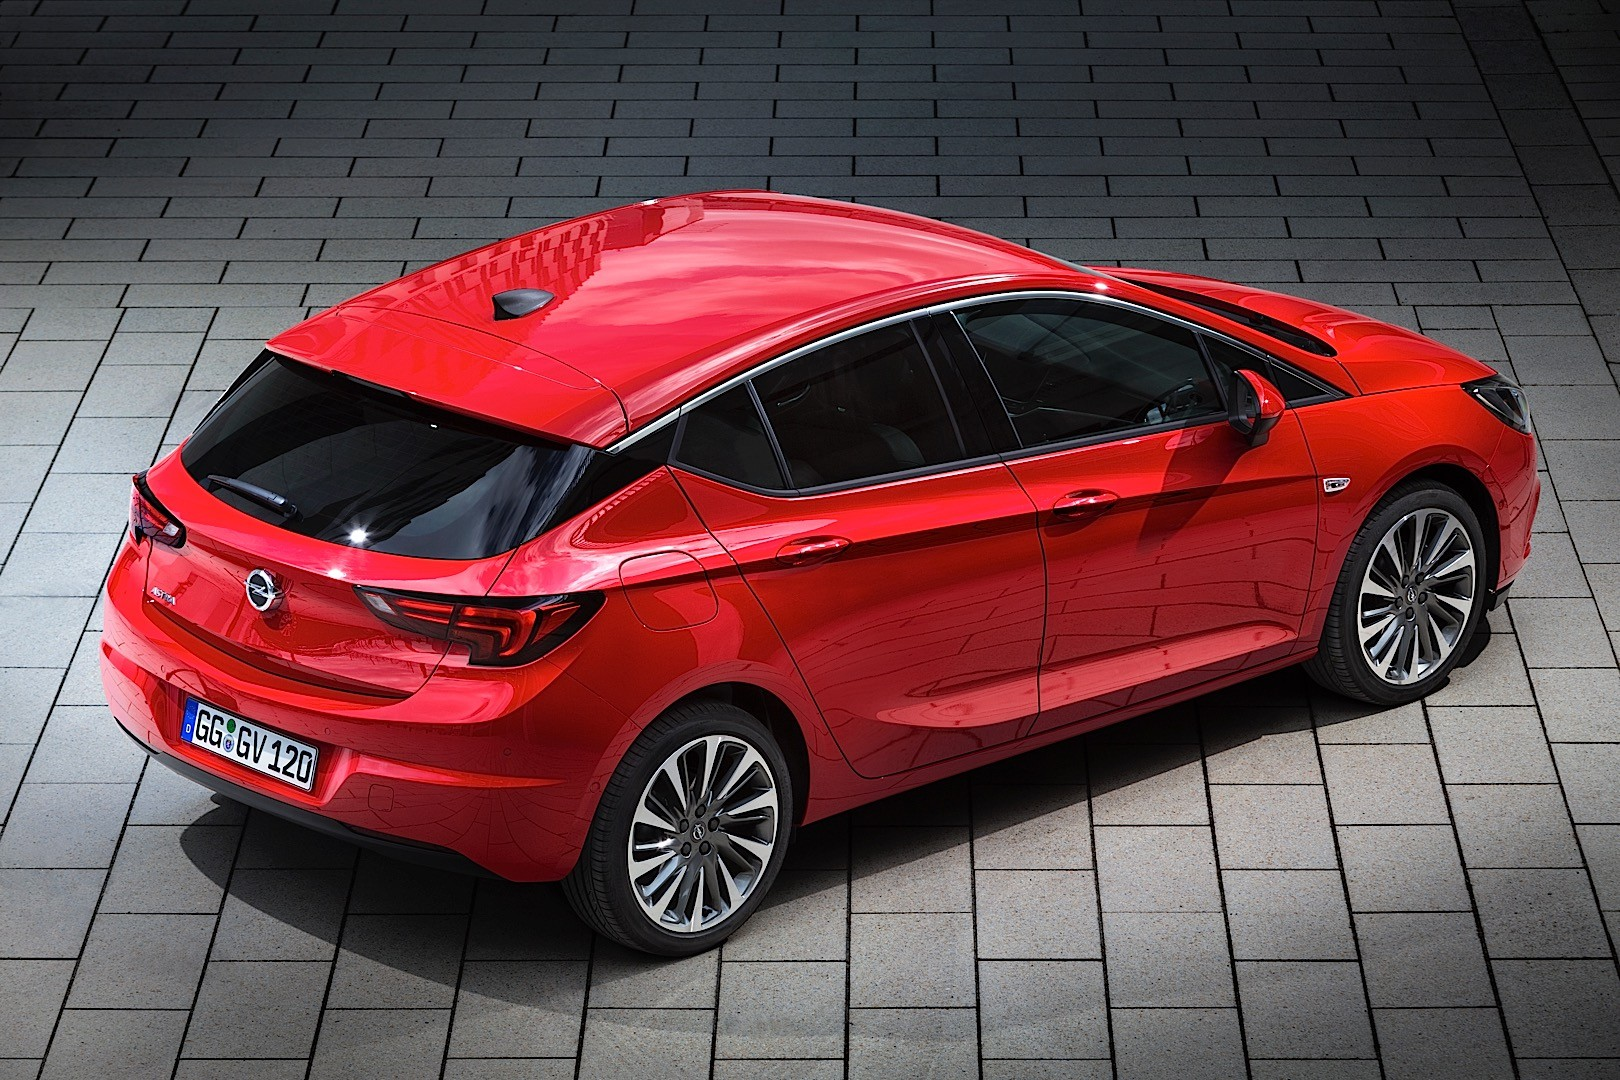 2015 Opel Astra Price: €17,960 for the 1-liter ECOTEC Turbo - autoevolution